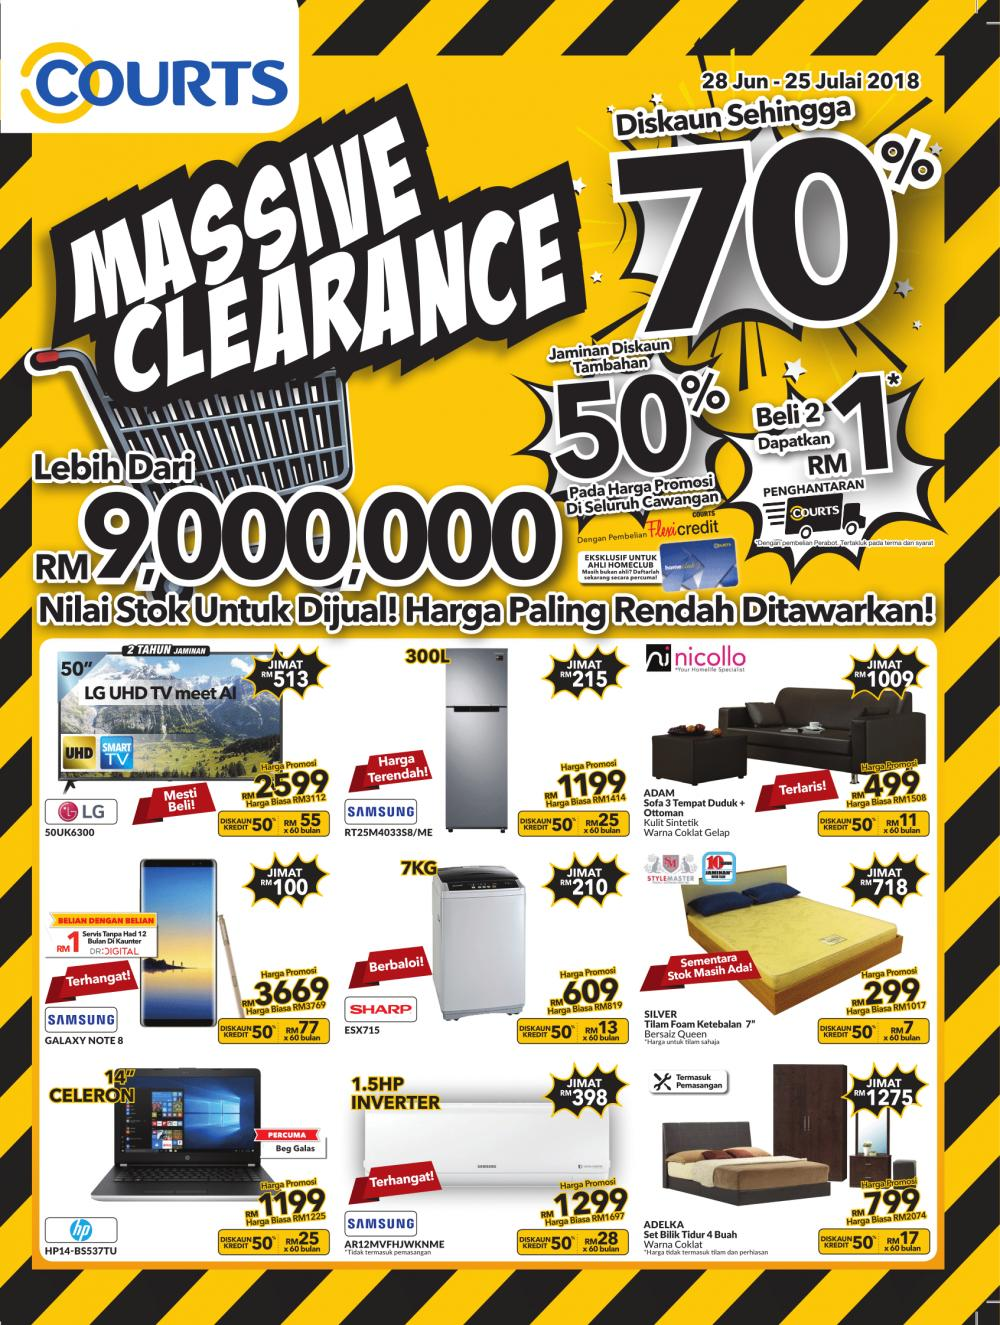 COURTS Massive Clearance Promotion Catalogue (28 June 2018.